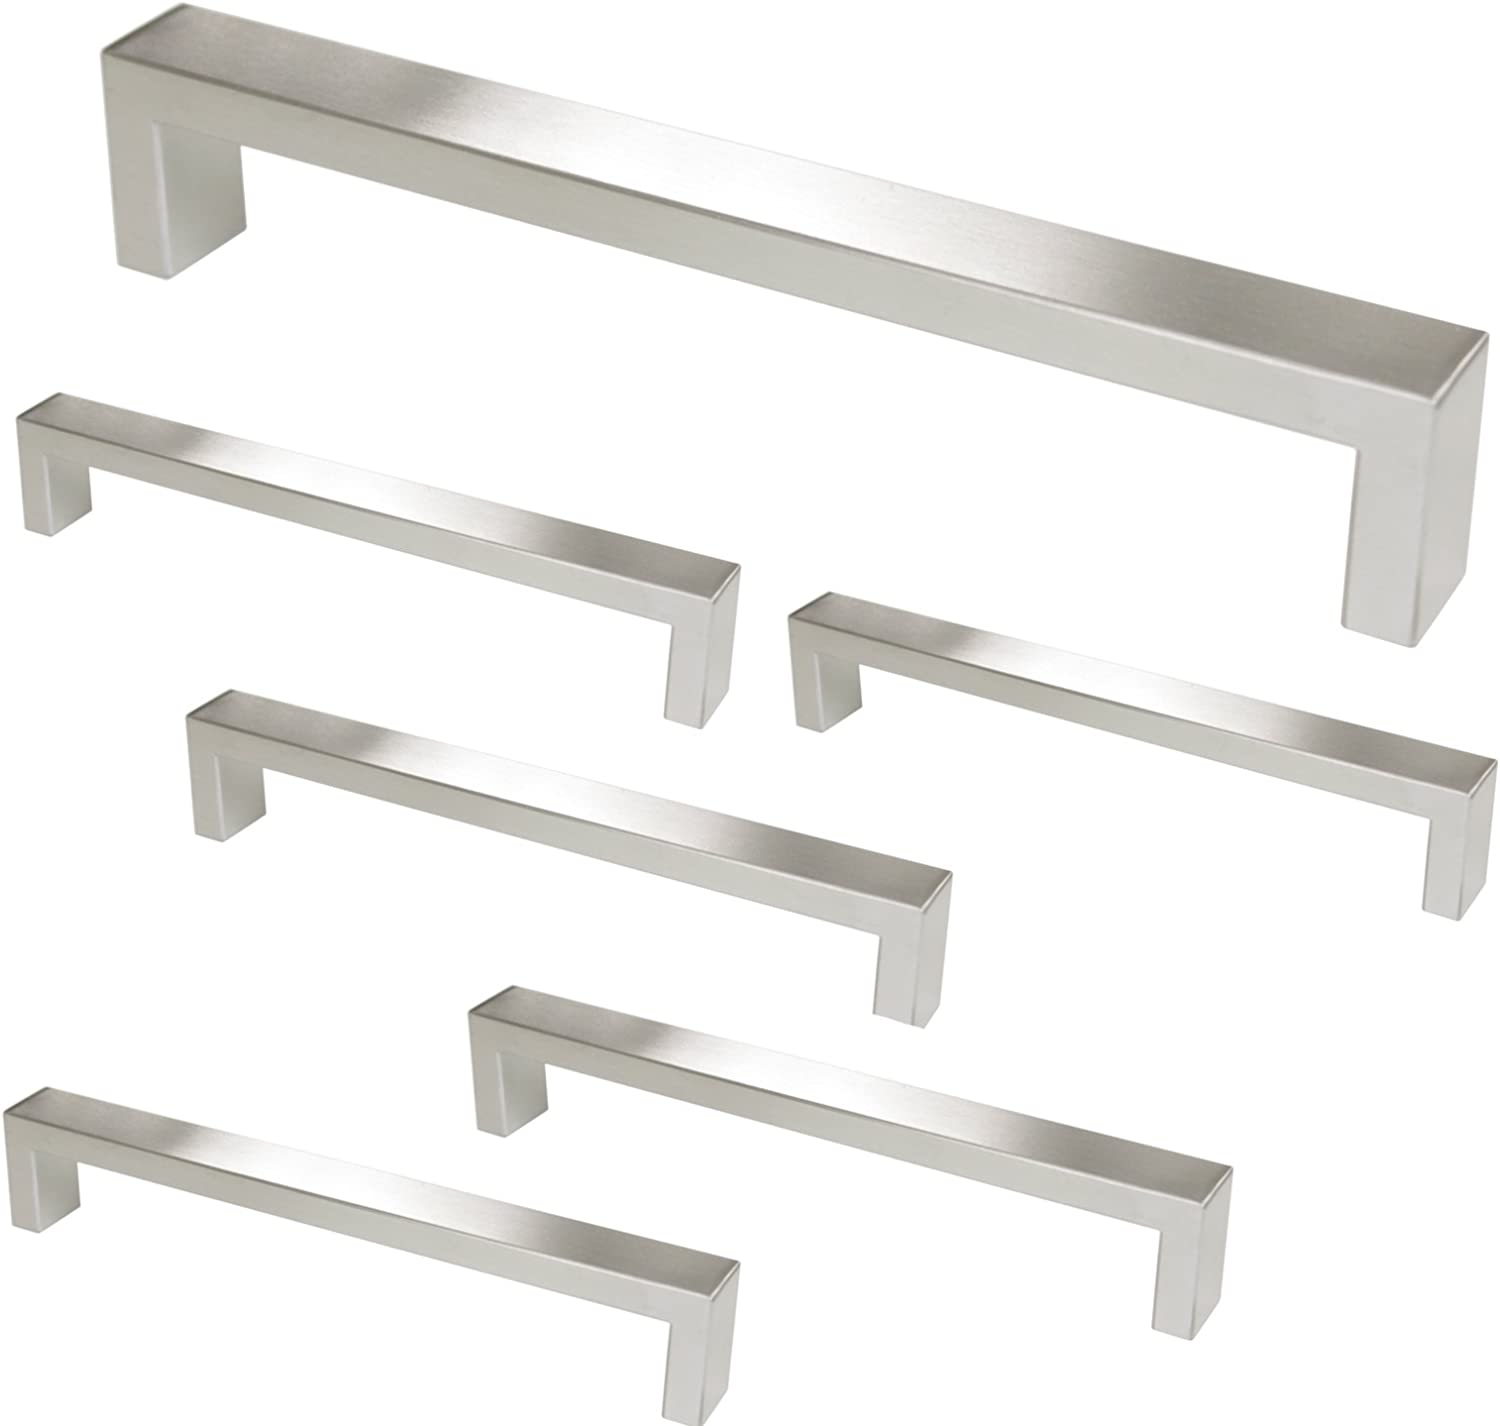 """Gobrico 10 Pack Single Hole Stainless Steel Square Bar Door Pulls Drawer Knob Satin Nickel,2/"""" Overall Length,10mm Wide"""